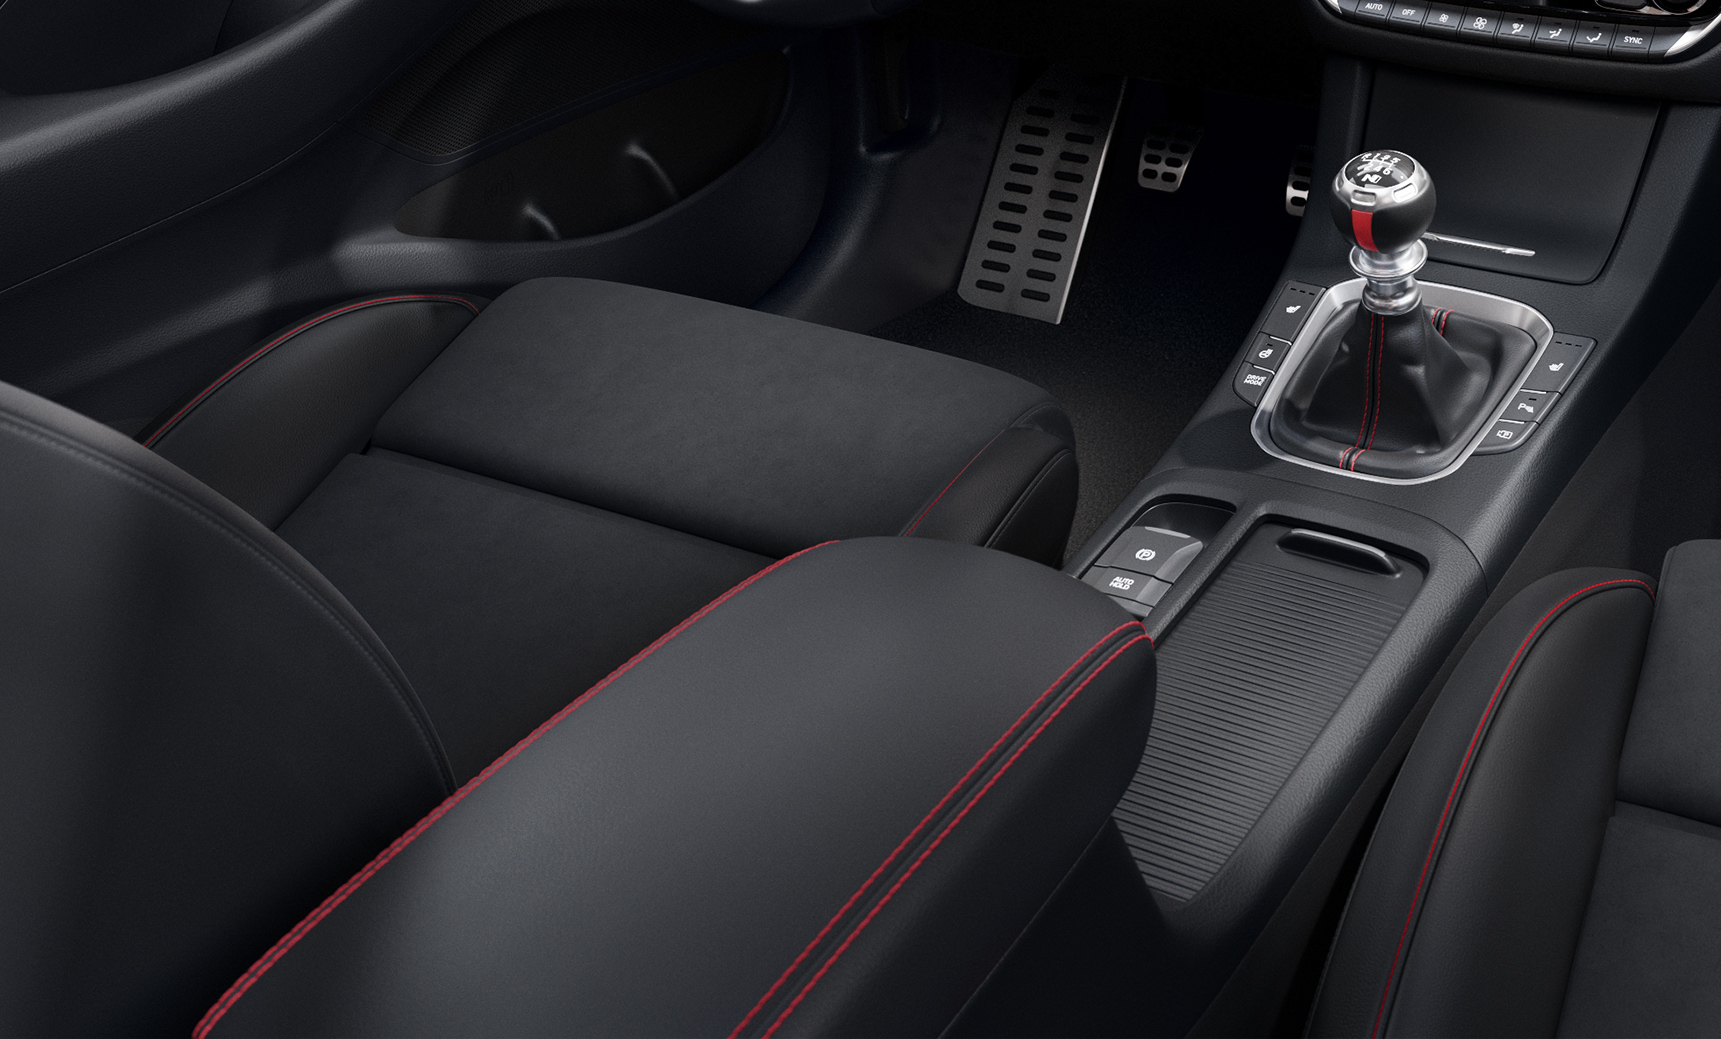 Close-up of the red accent stitching in the new Hyundai i30 N Line Fastback interior.